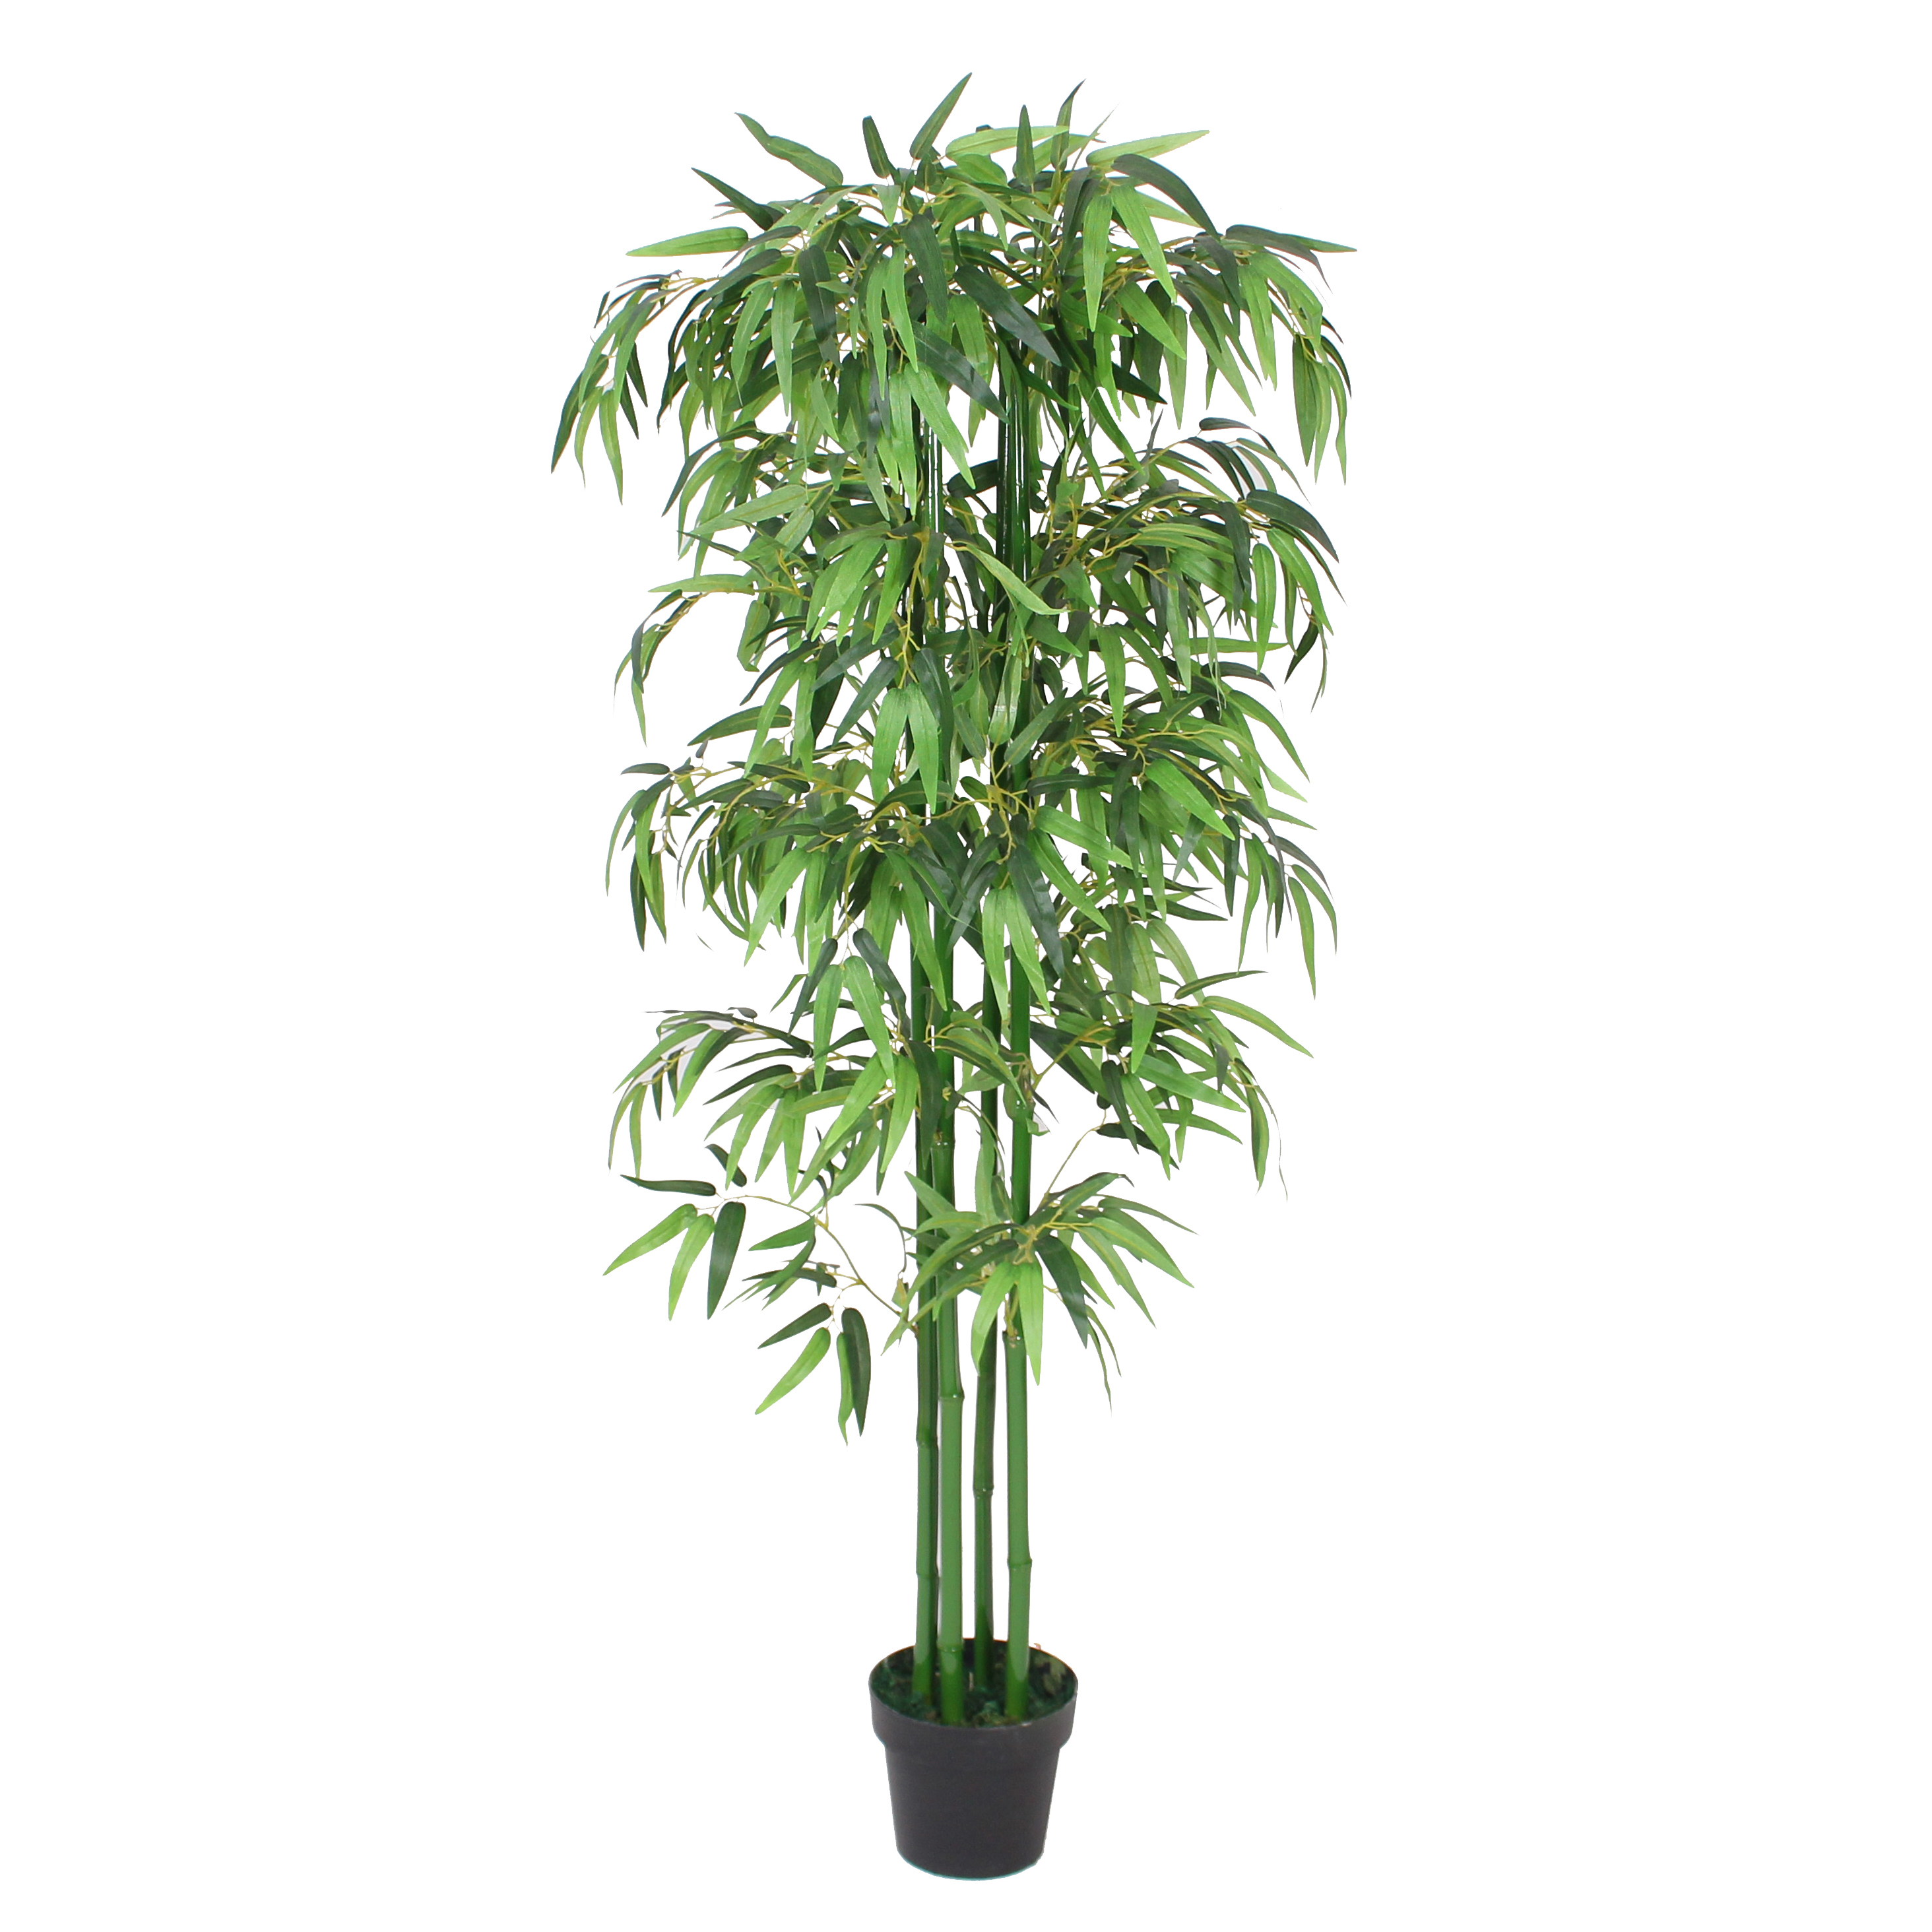 2020 Hot Sale Cheap Indoor Decorativos Plantas Artificiais Plantas De Bambu Chines Sorte De Bambu Interior Buy Chinese Bamboo Plants Lucky Bamboo Indoor Cheap Artificial Plants Dry Decoration Bamboo Product On Alibaba Com